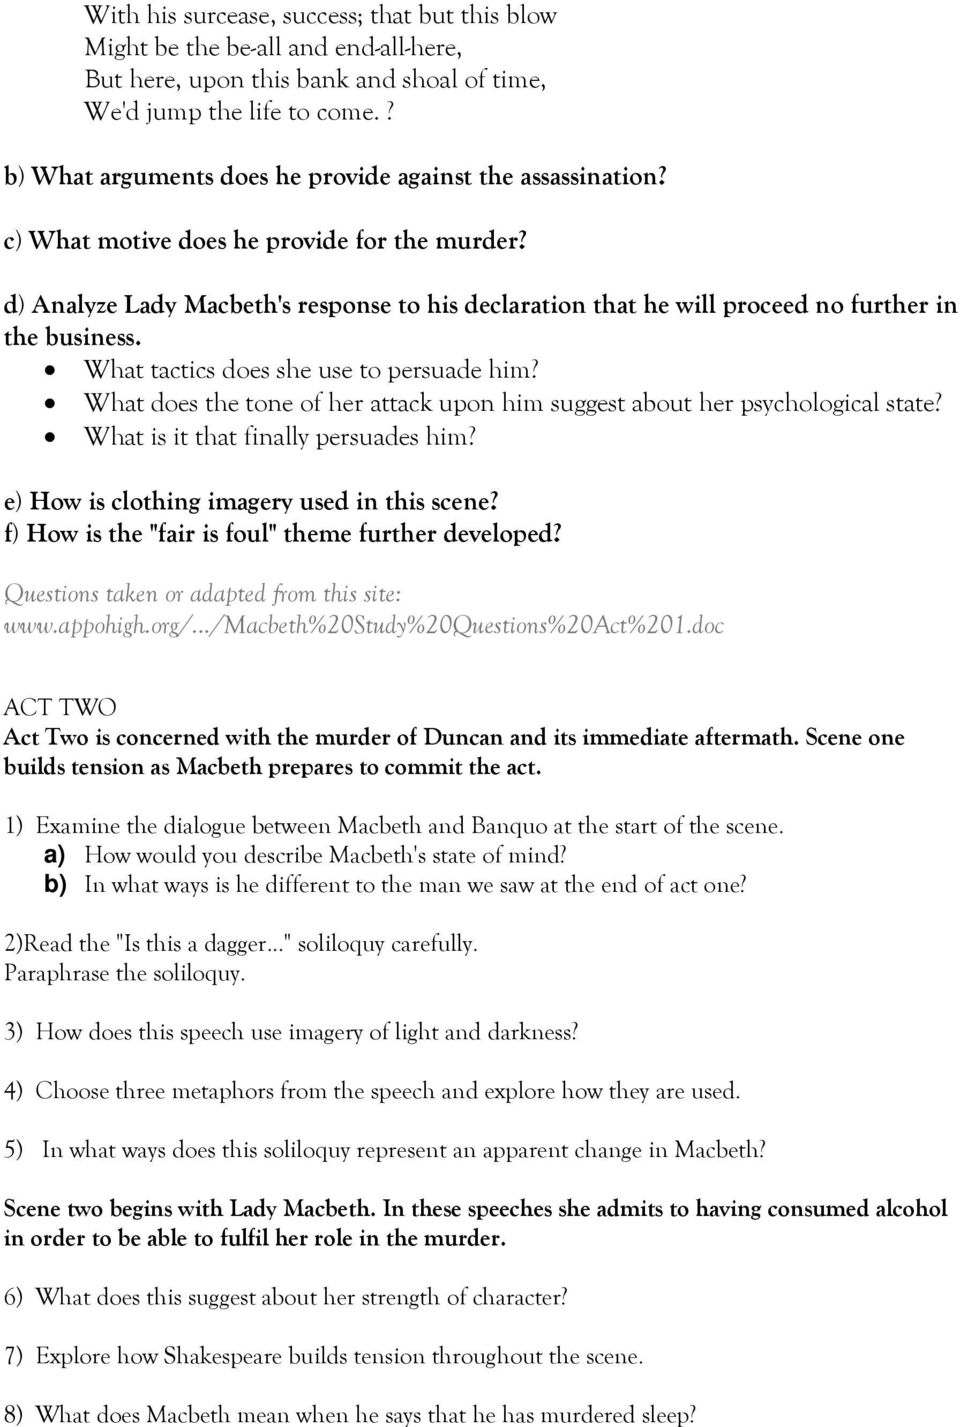 Macbeth Study Question Pdf Free Download Paraphrase I Thi A Dagger Soliloquy